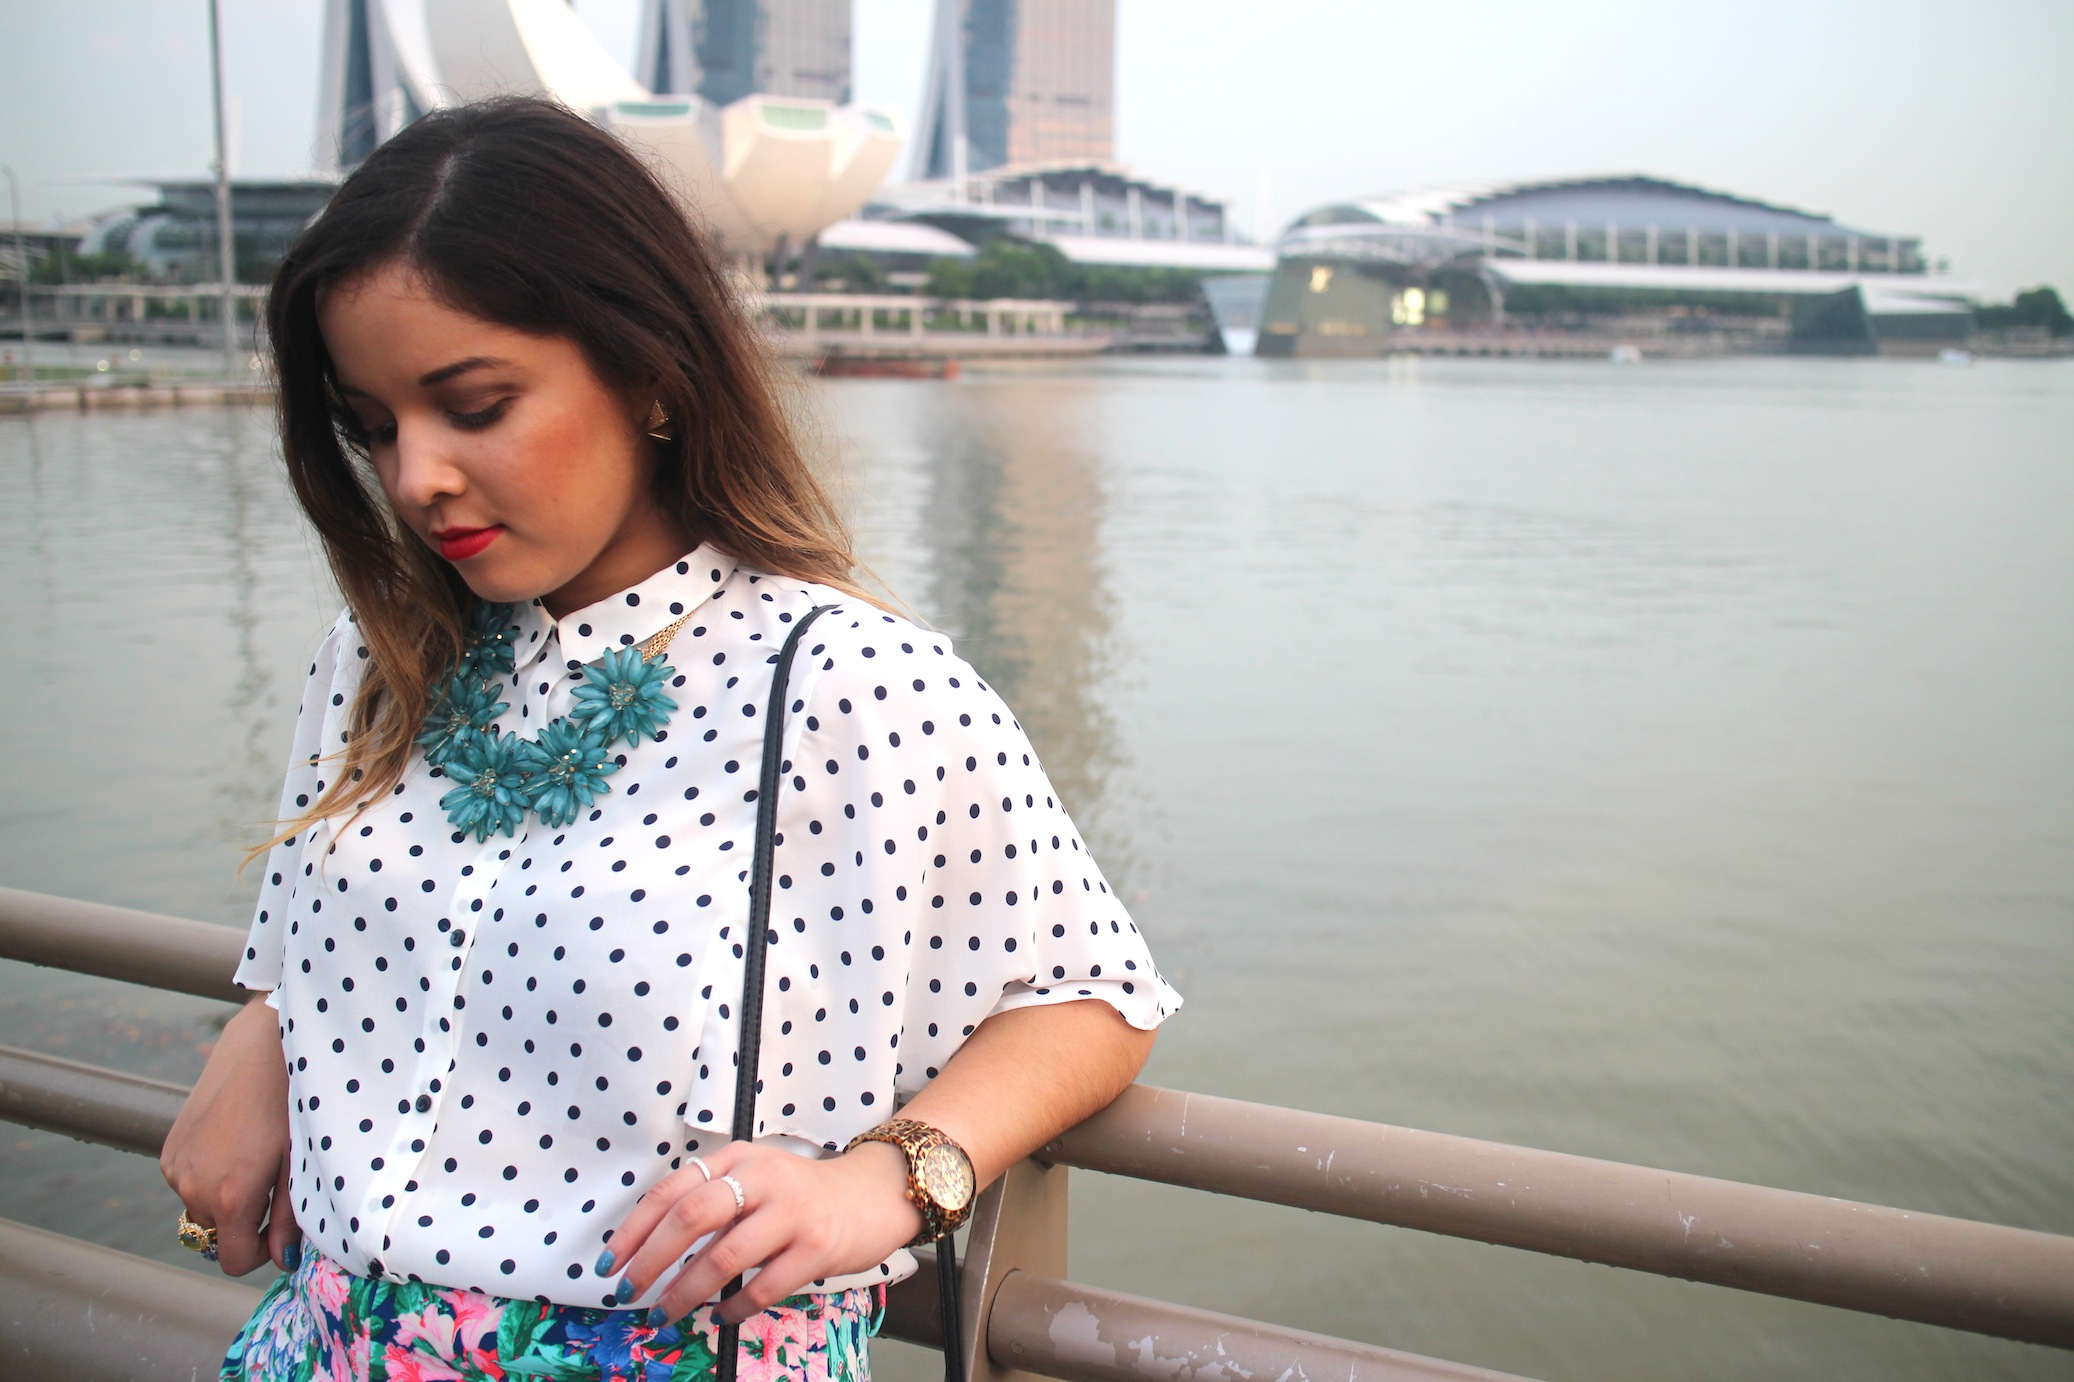 nezuki, Singapore, Zara, Lovisa, jewellery, jewelry, shoes, heels, floral, pants, printed pants, polka dots, red lips, Kith, food, foodie, foodporn, vintage, Sinagpore style, Marina Bay, tropical, travel, photography, fashion, style, classy, blogger